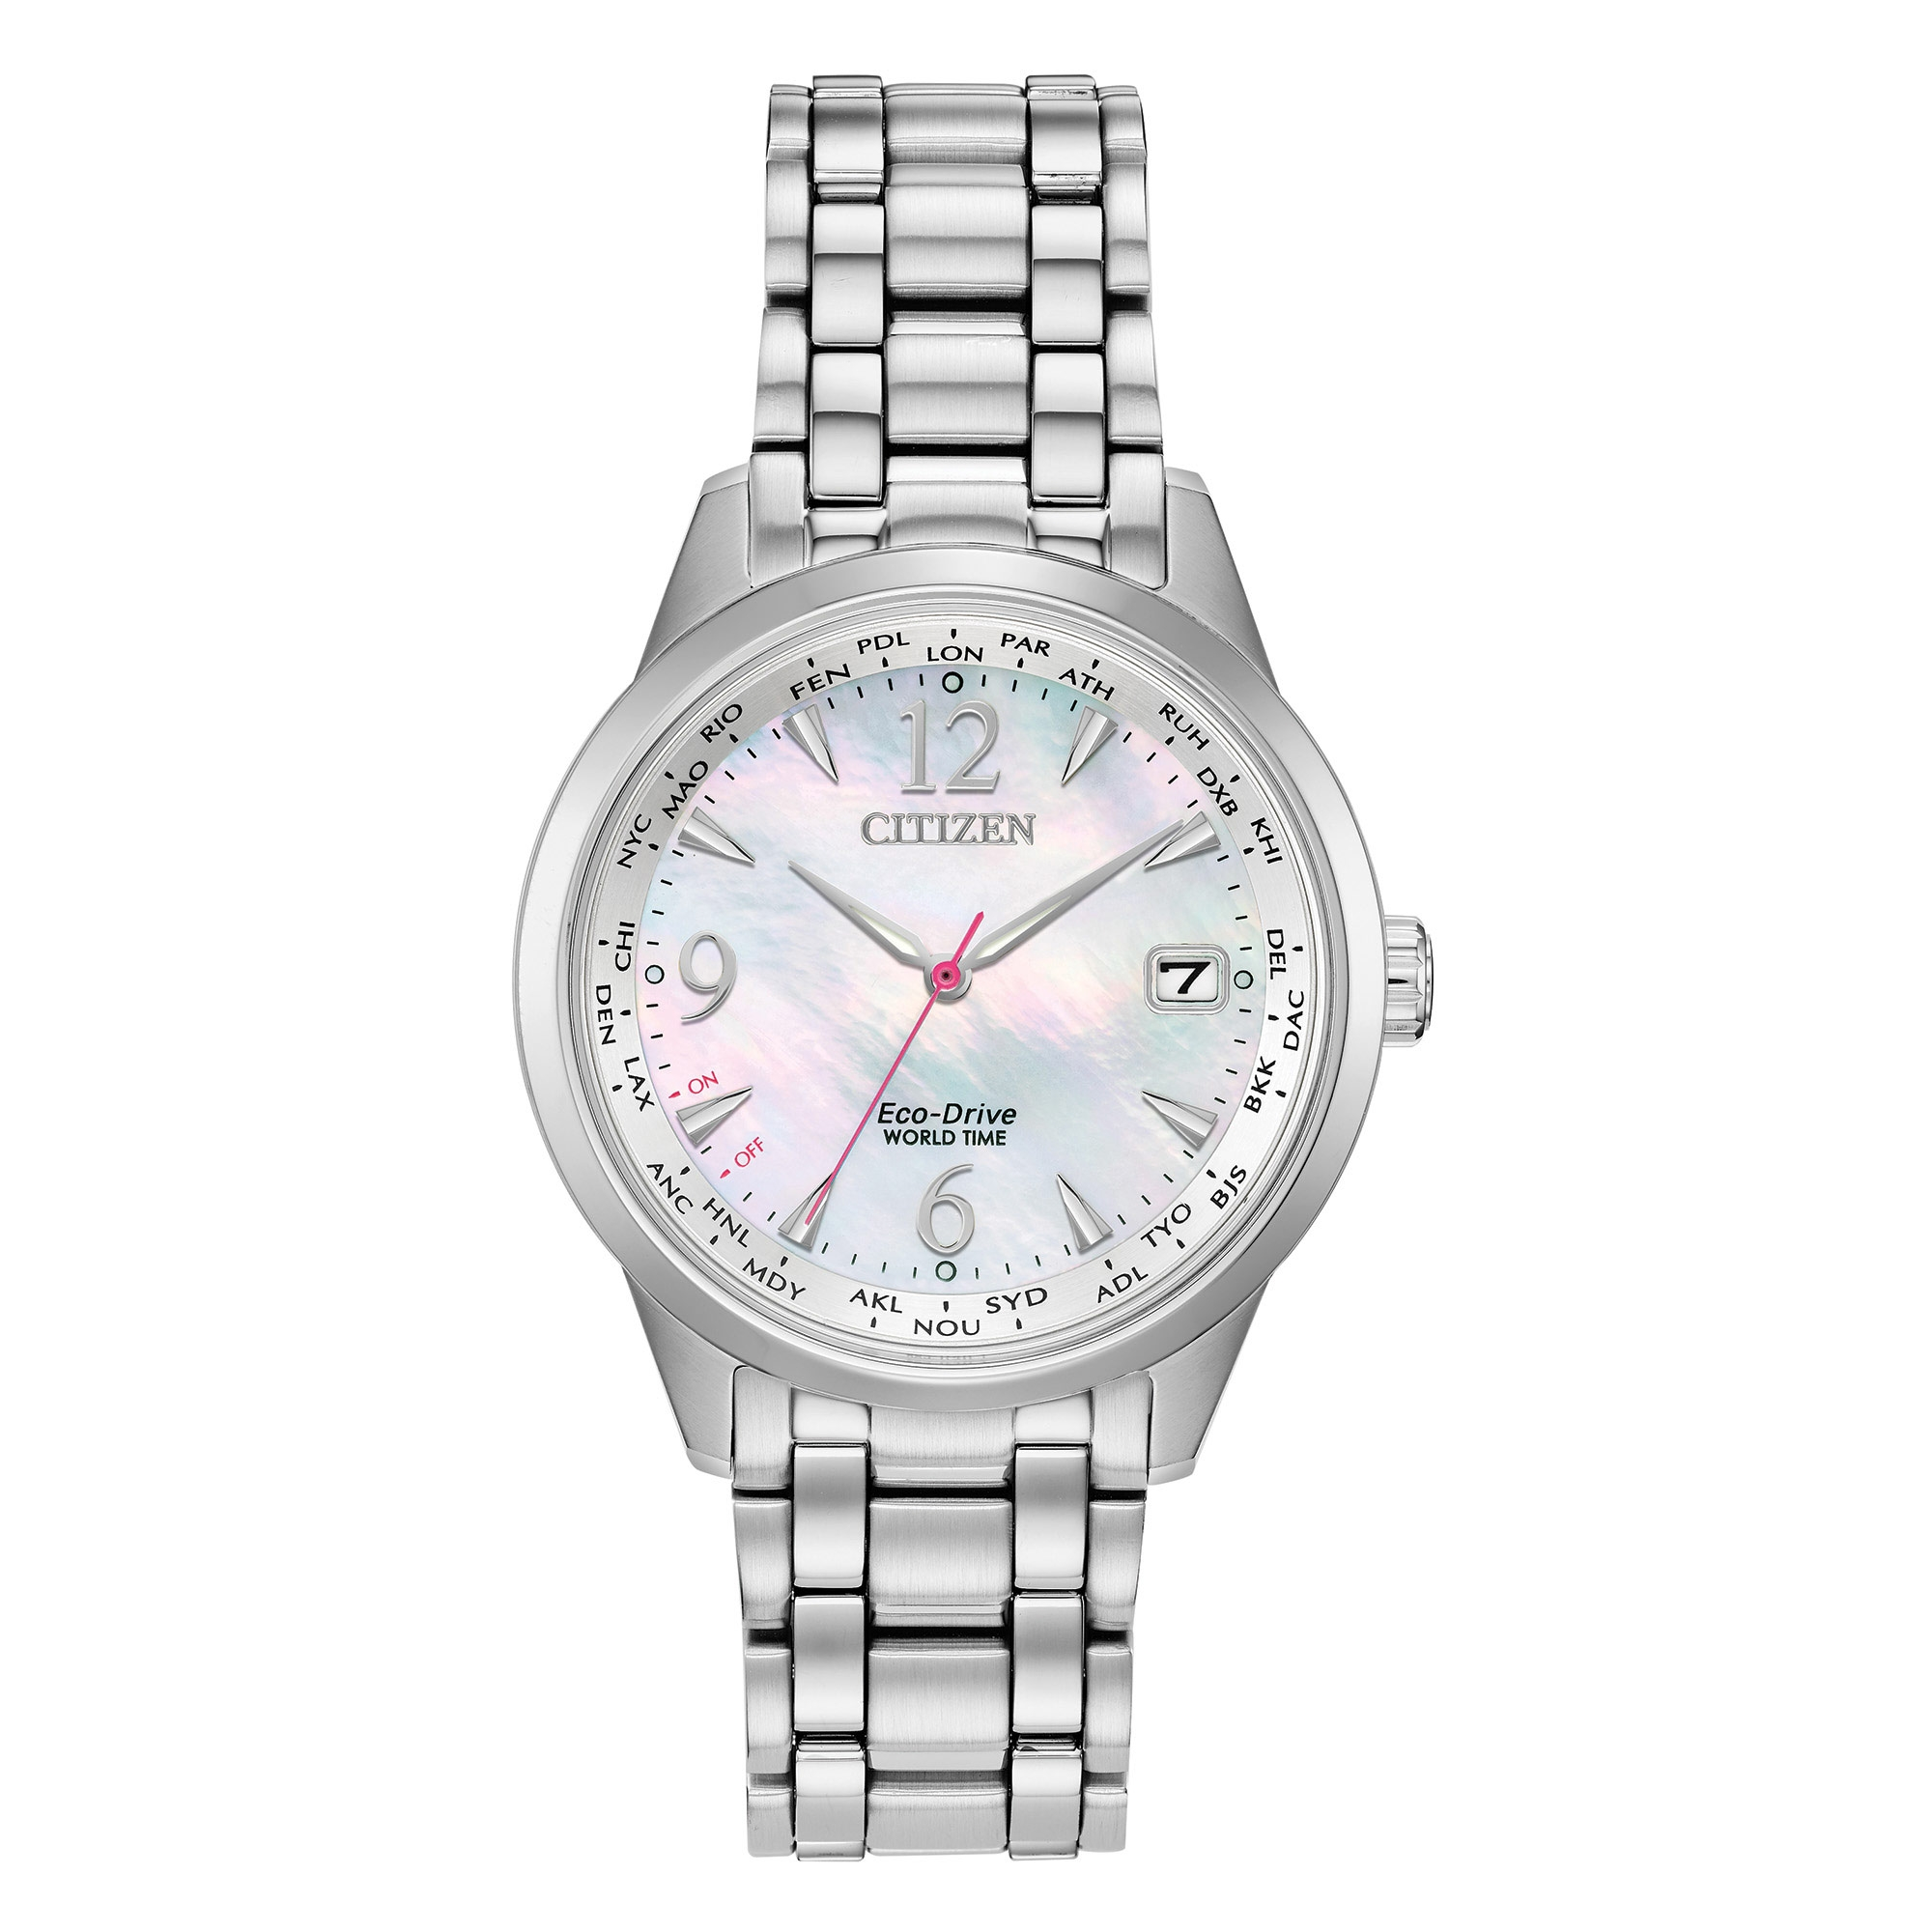 FC8000-55D Citizen World Time Eco-Drive Ladies Watch